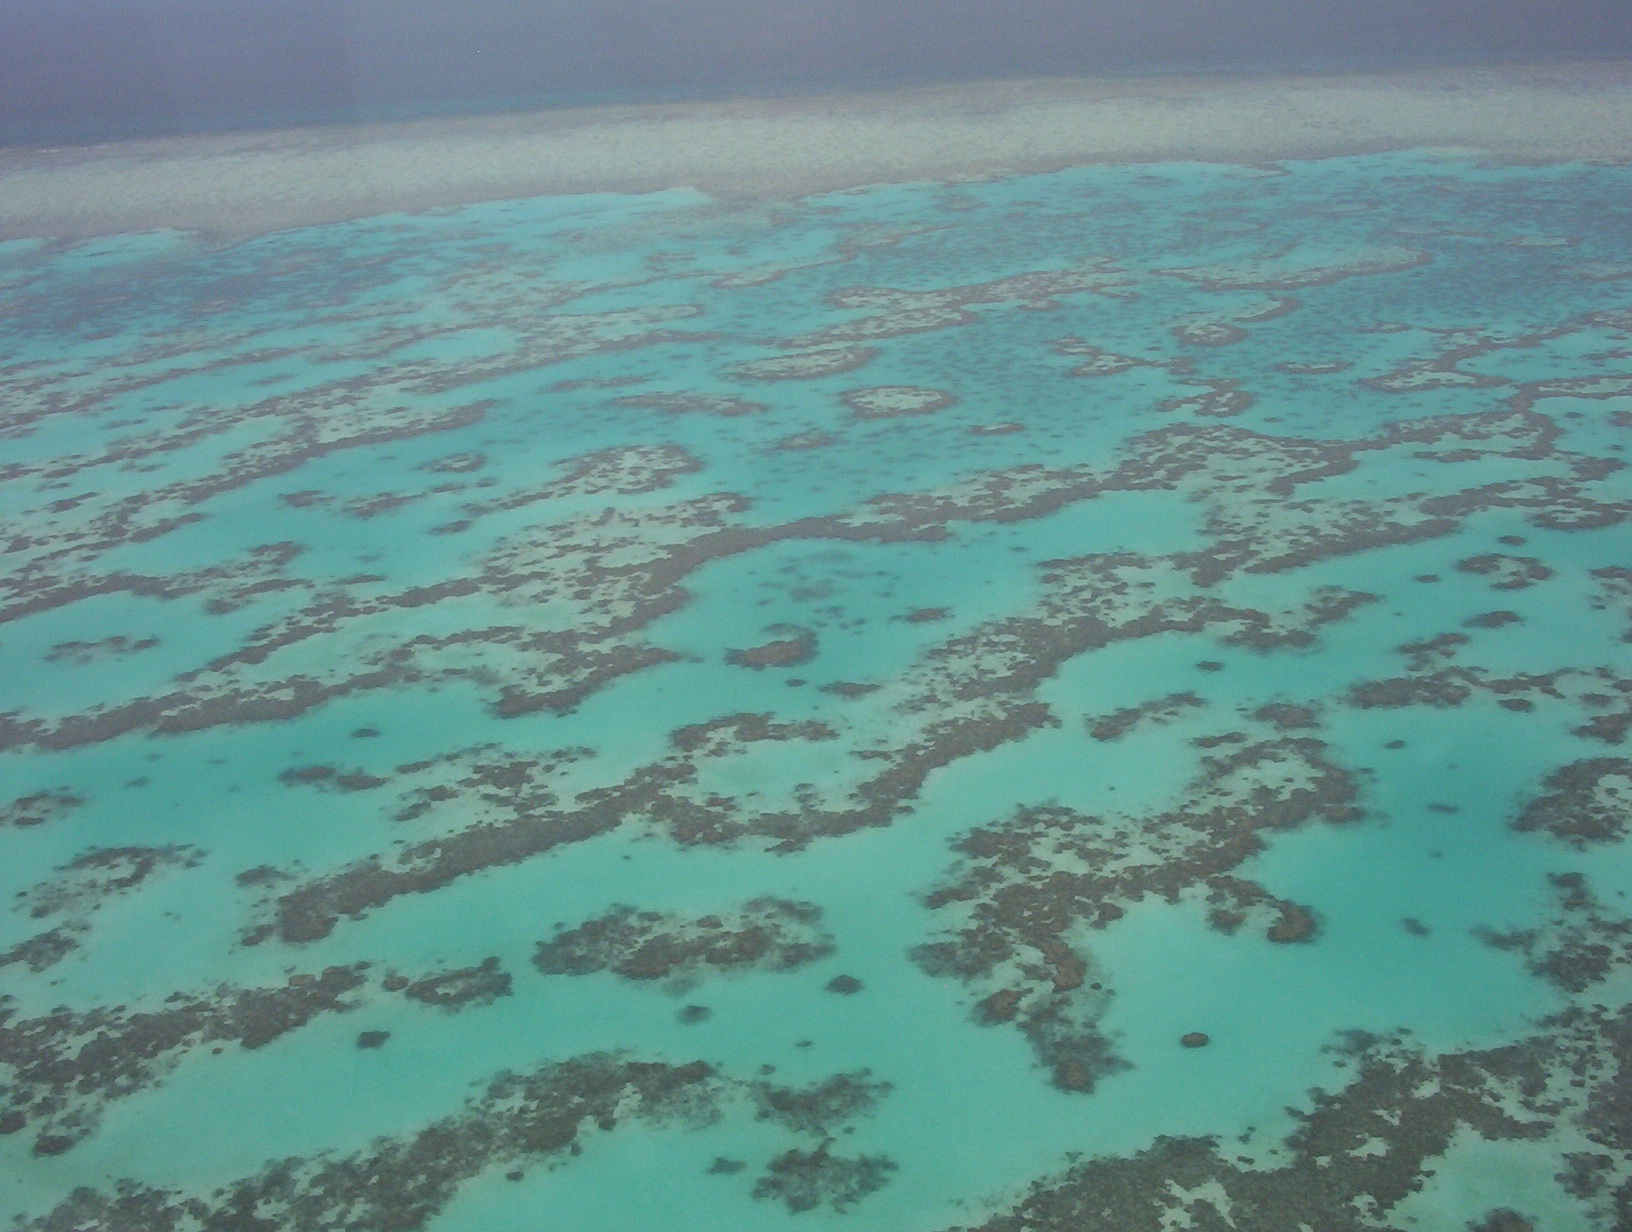 Science News Roundup: Australian scientists find huge new healthy coral reef off northern coast; Chinese spacecraft set for Mars landing in May and more